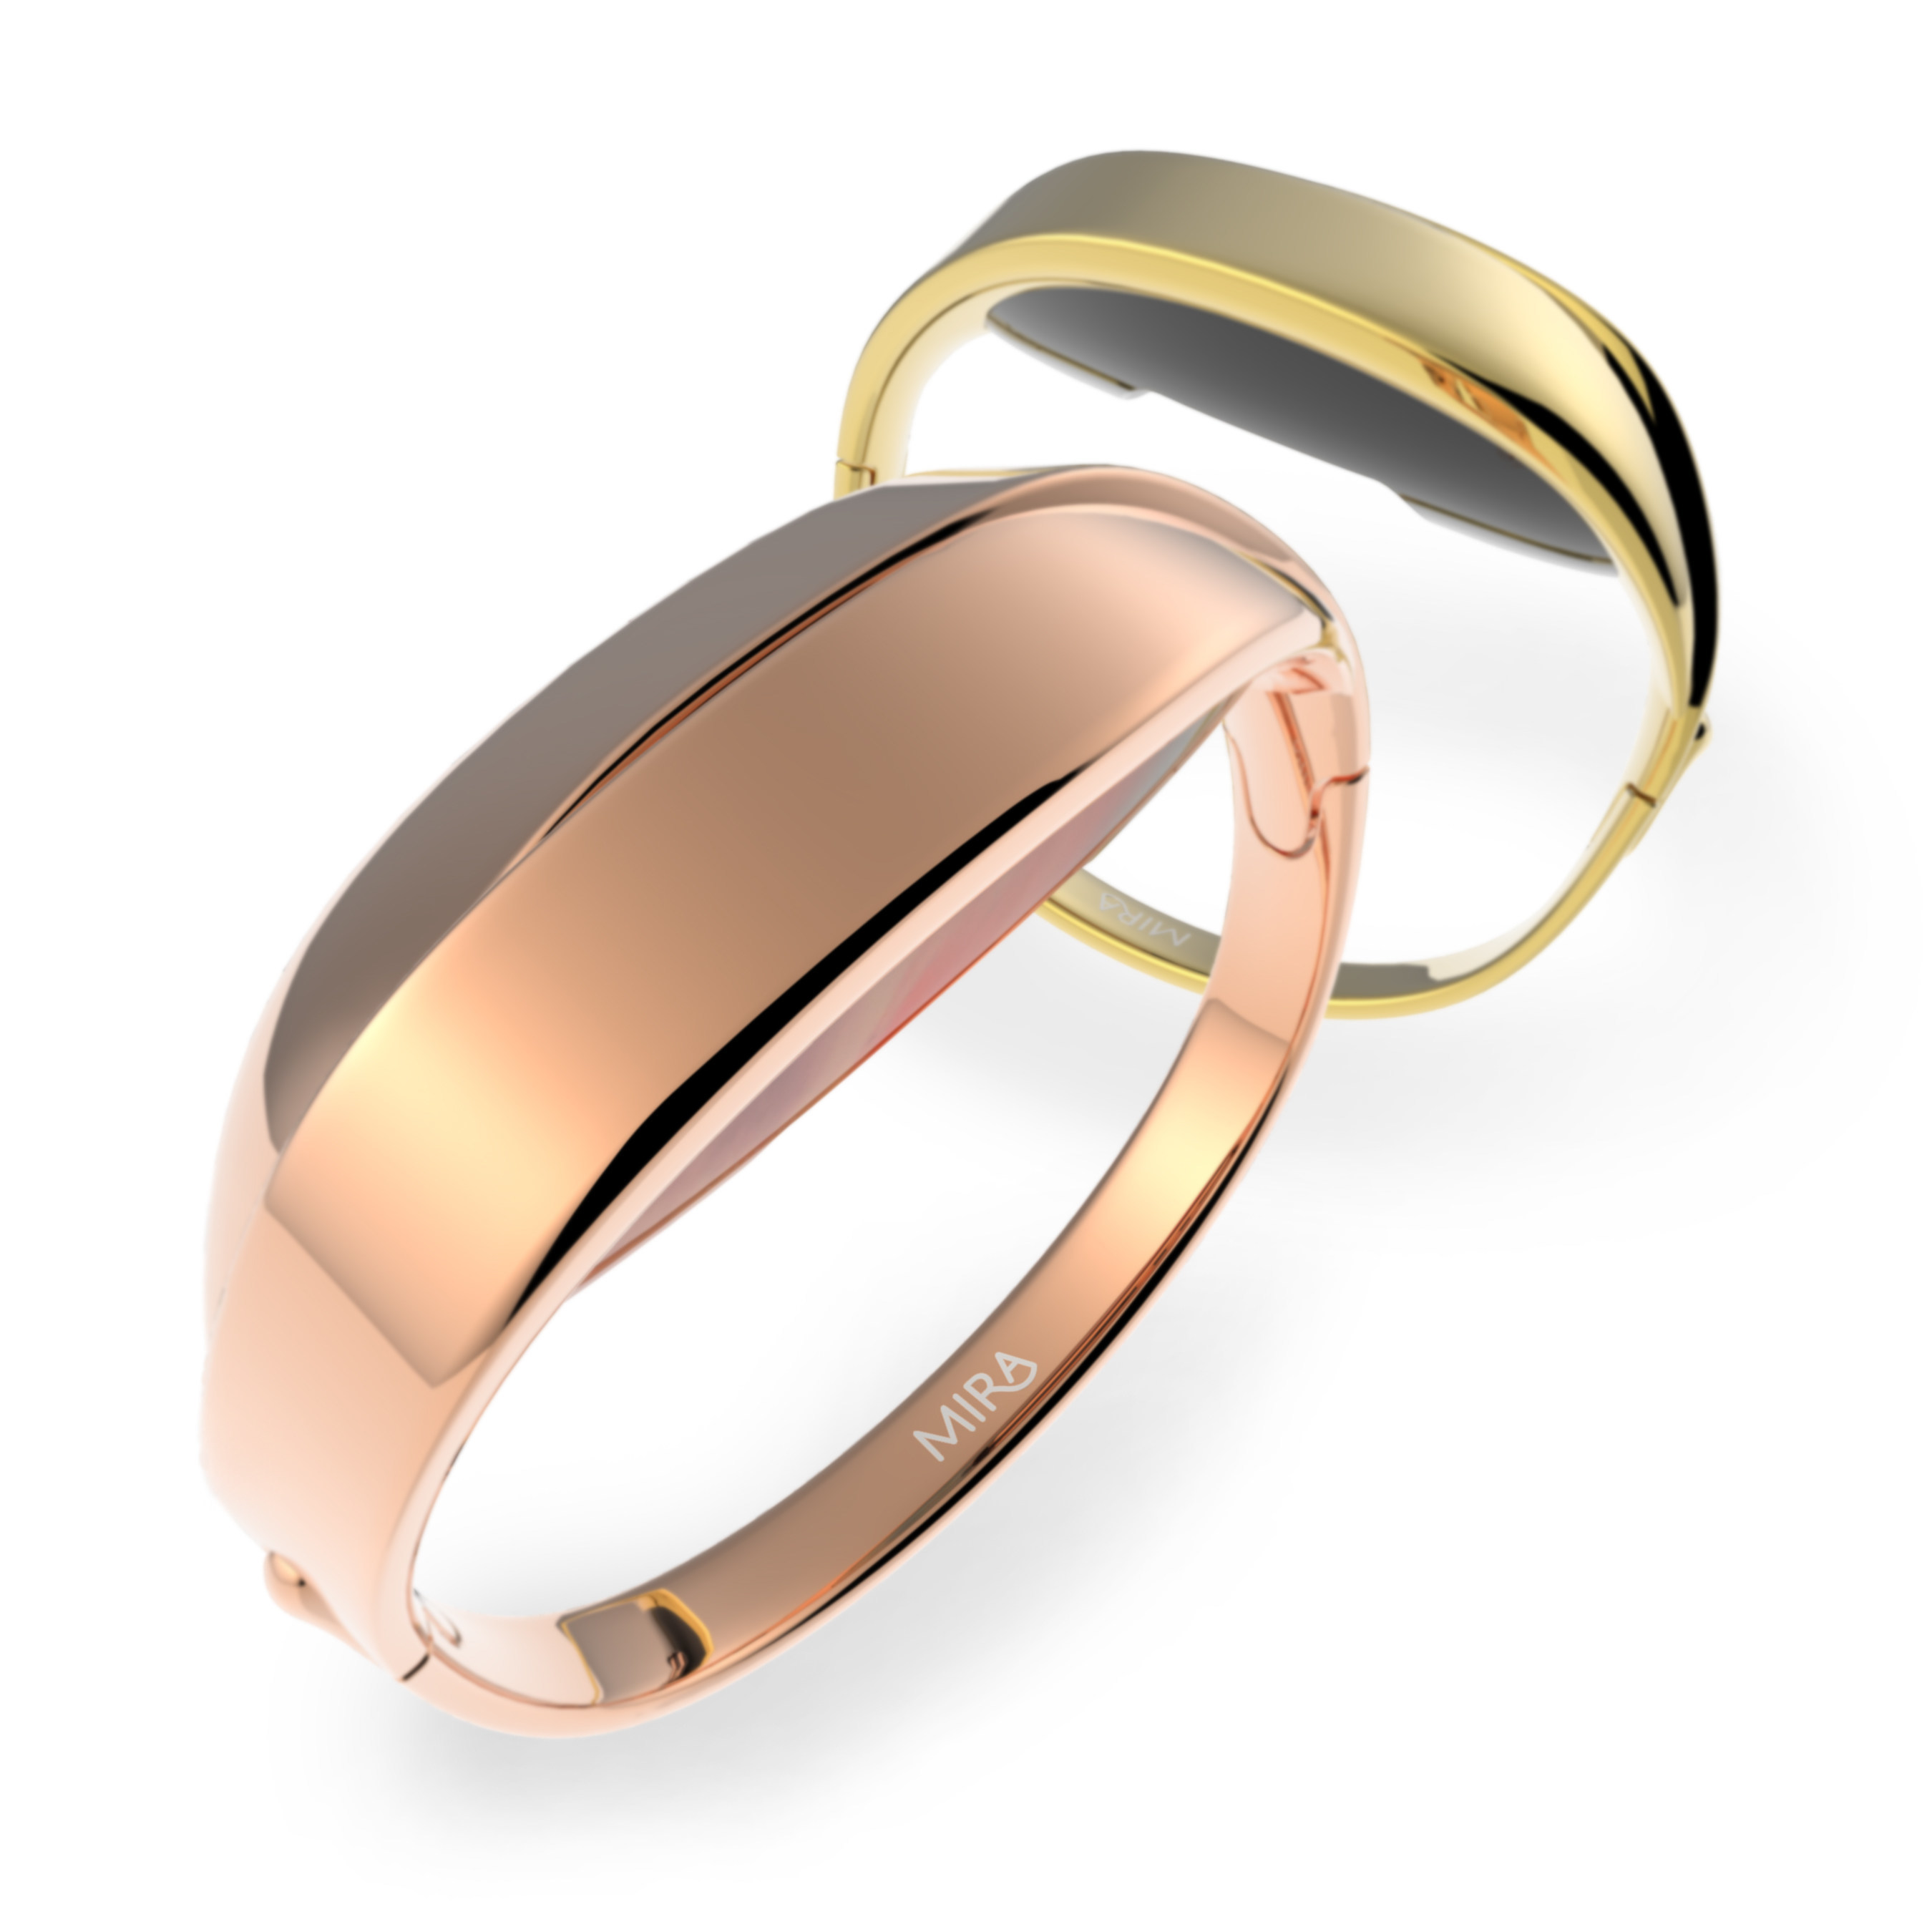 Slated to launch in 2016, the new Mira Vivid Wellness Bracelet allows for the utmost discretion. Hidden in the sleek, ribbon-inspired design, is the opal, Mira's proprietary tracker which measures steps, calories, distance and elevation. Melding style, function and covert design, the Vivid Bracelet is the perfect option for the woman who wants to keep her tracking habit private. The setting will be available in two finishes - Rose All Day and Heart of Gold.